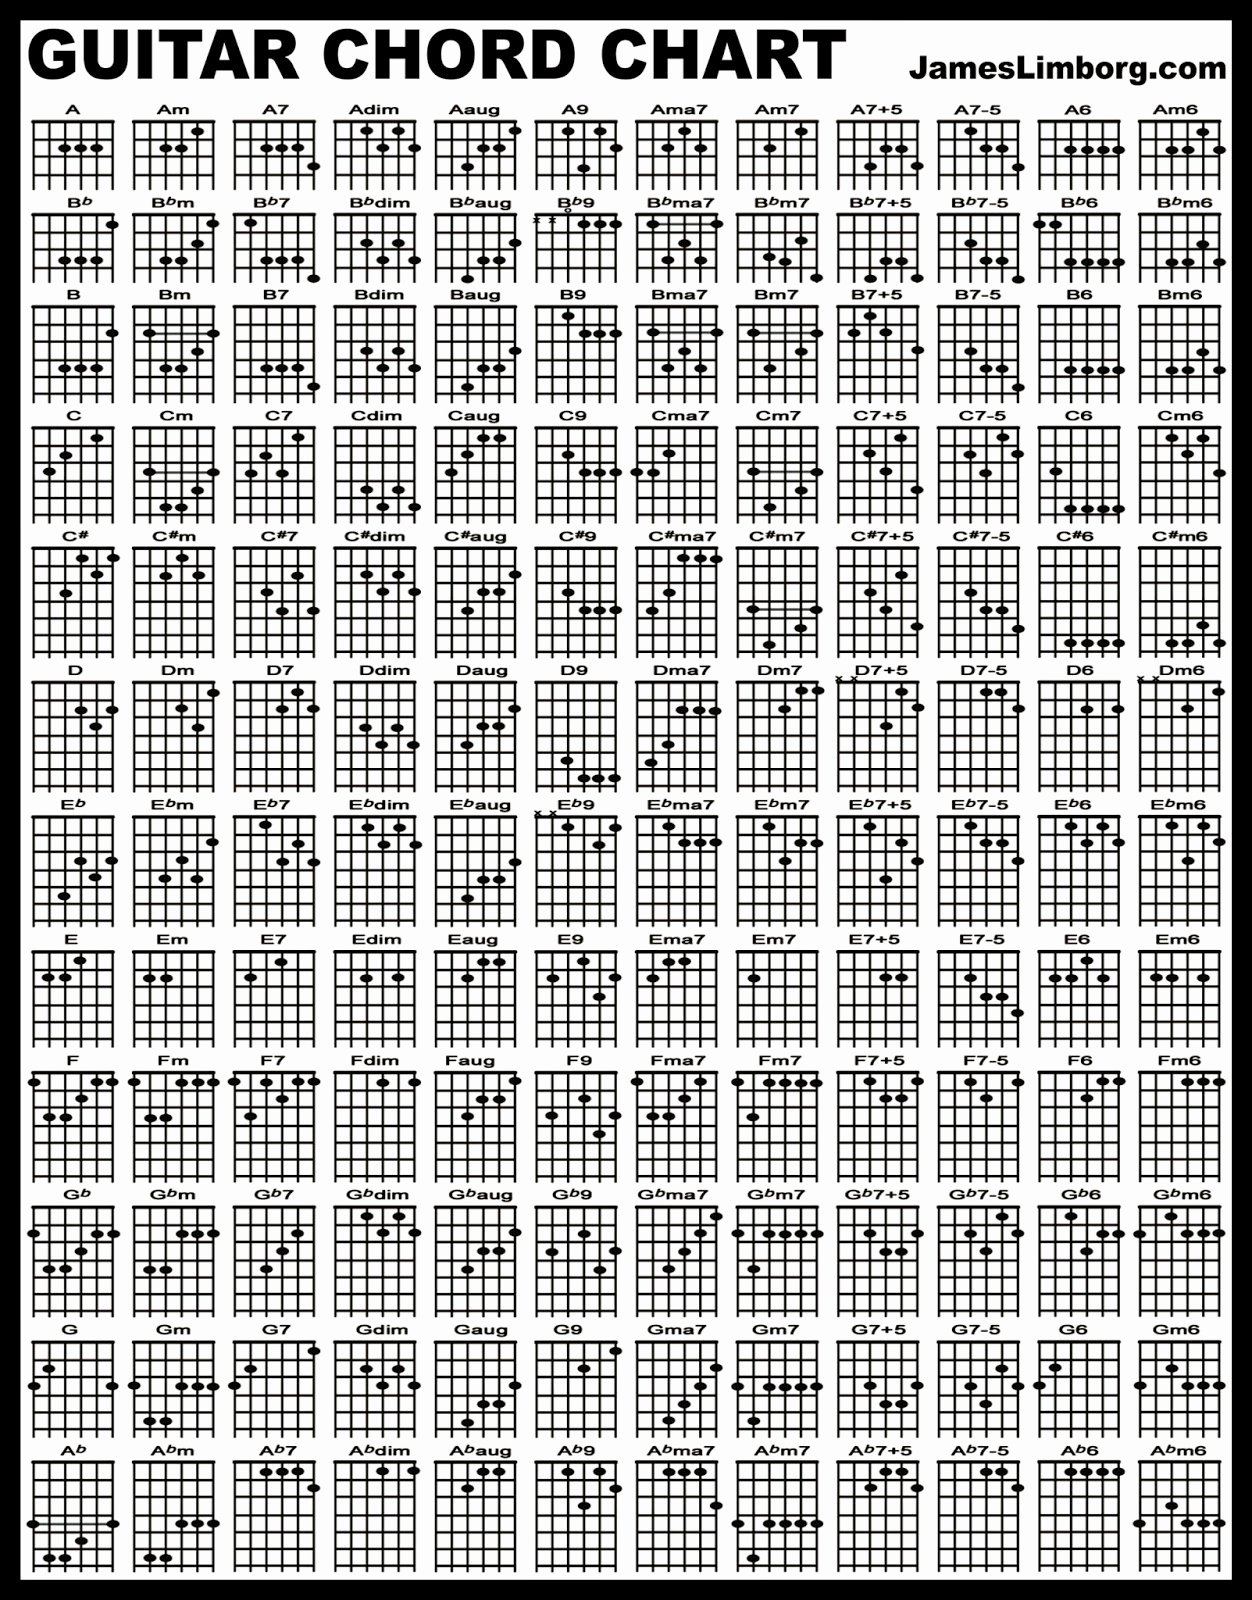 Complete Guitar Chords Chart Luxury About Guitar